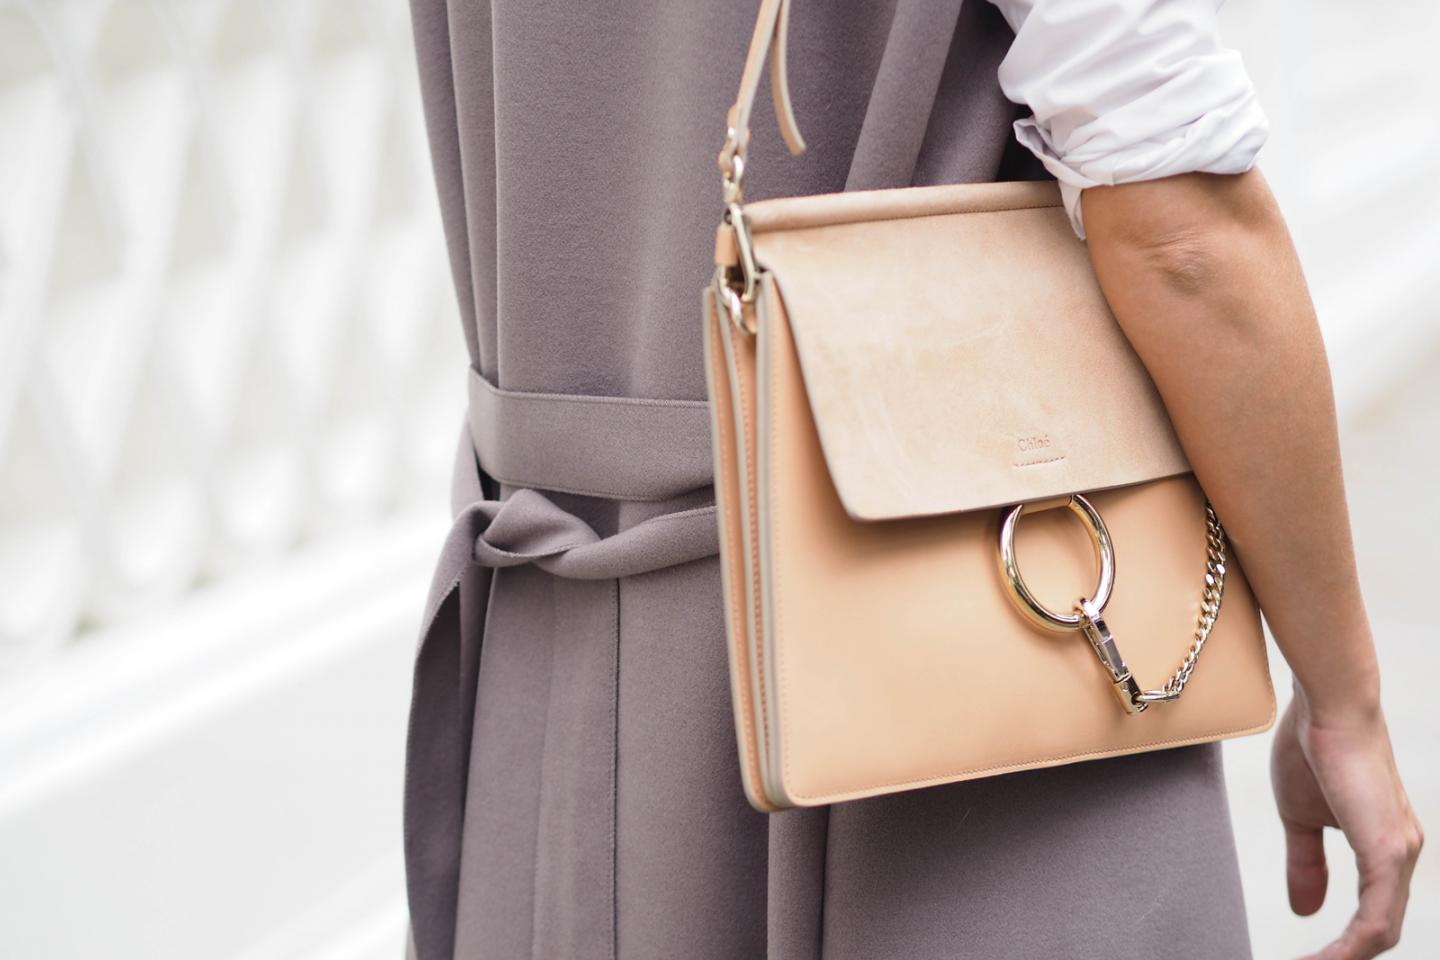 EJSTYLE wears Misty Beige Chloe Faye bag, taupe sleeveless coat, white shirt,